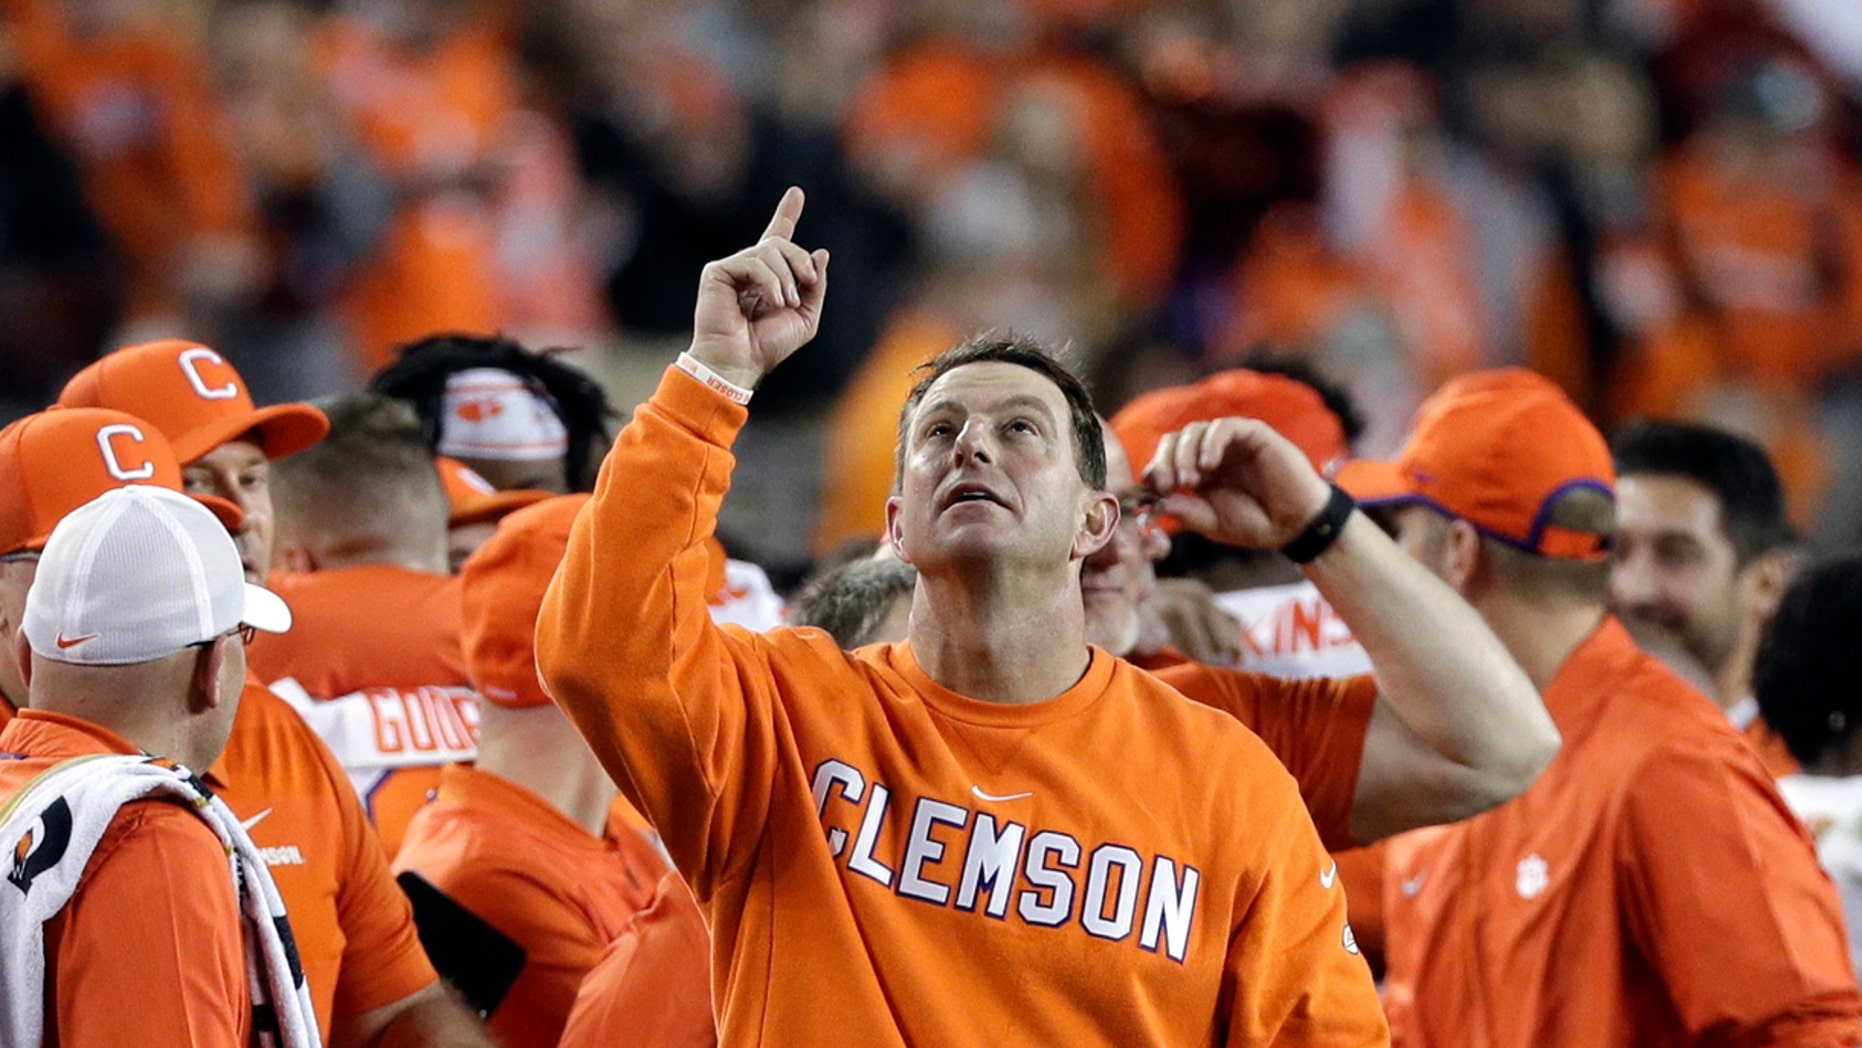 Clemson head coach Dabo Swinney celebrates in the final seconds of the NCAA college football playoff championship game against Alabama, Monday, Jan. 7, 2019, in Santa Clara, Calif. (AP Photo/David J. Phillip)